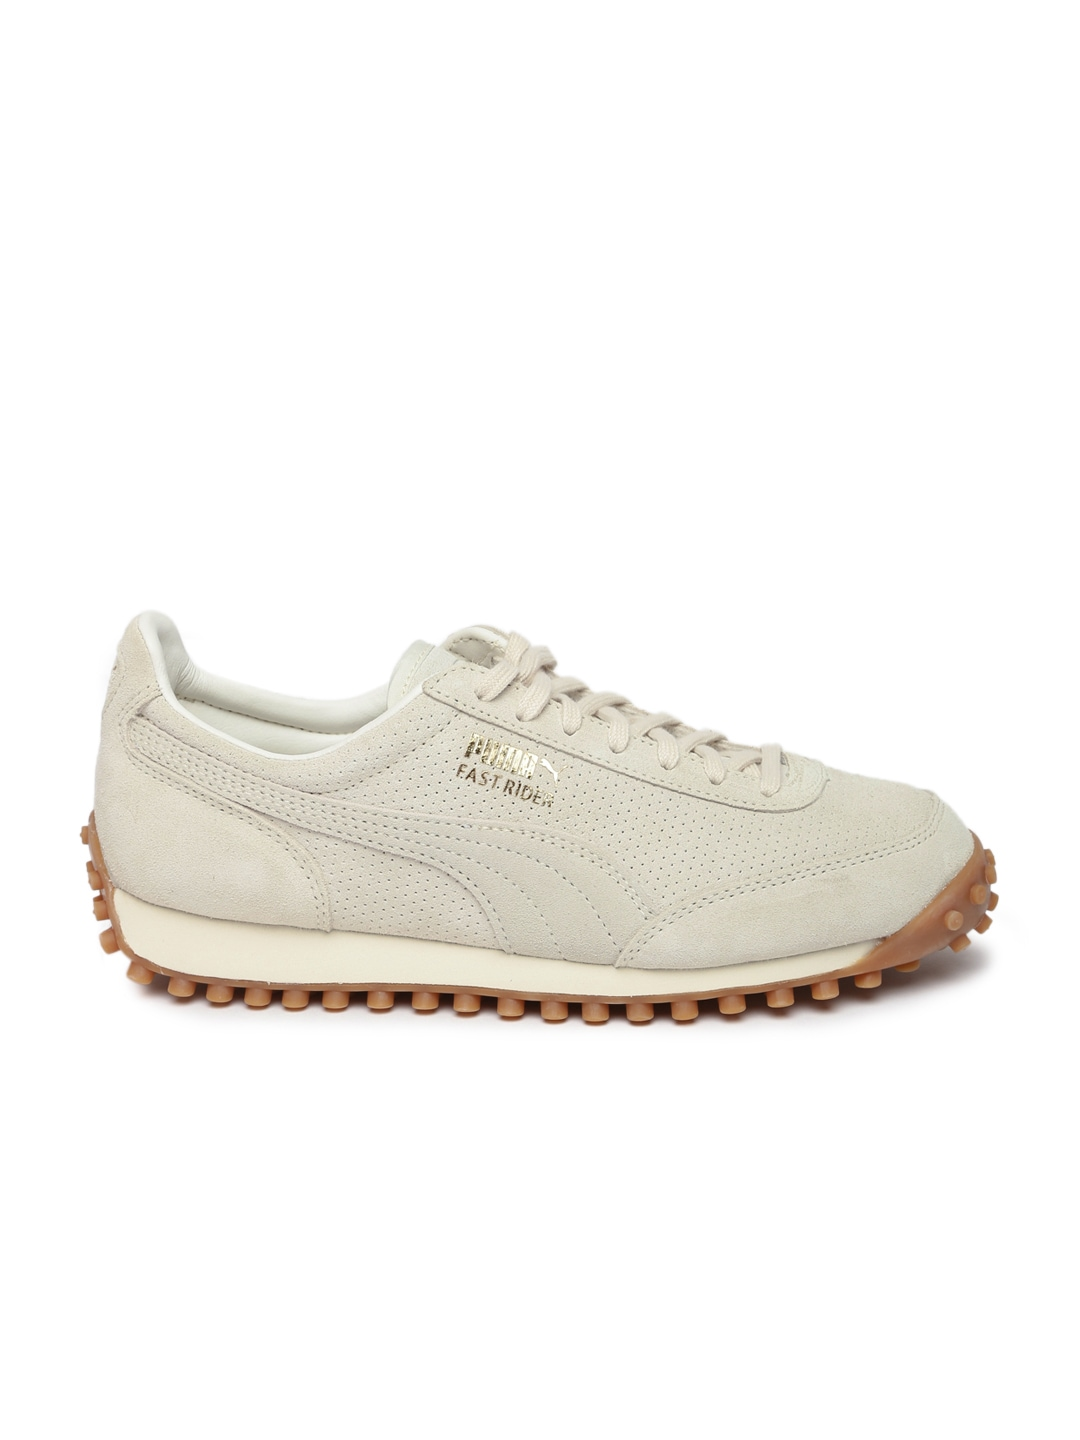 puma unisex navy & beige casual shoes